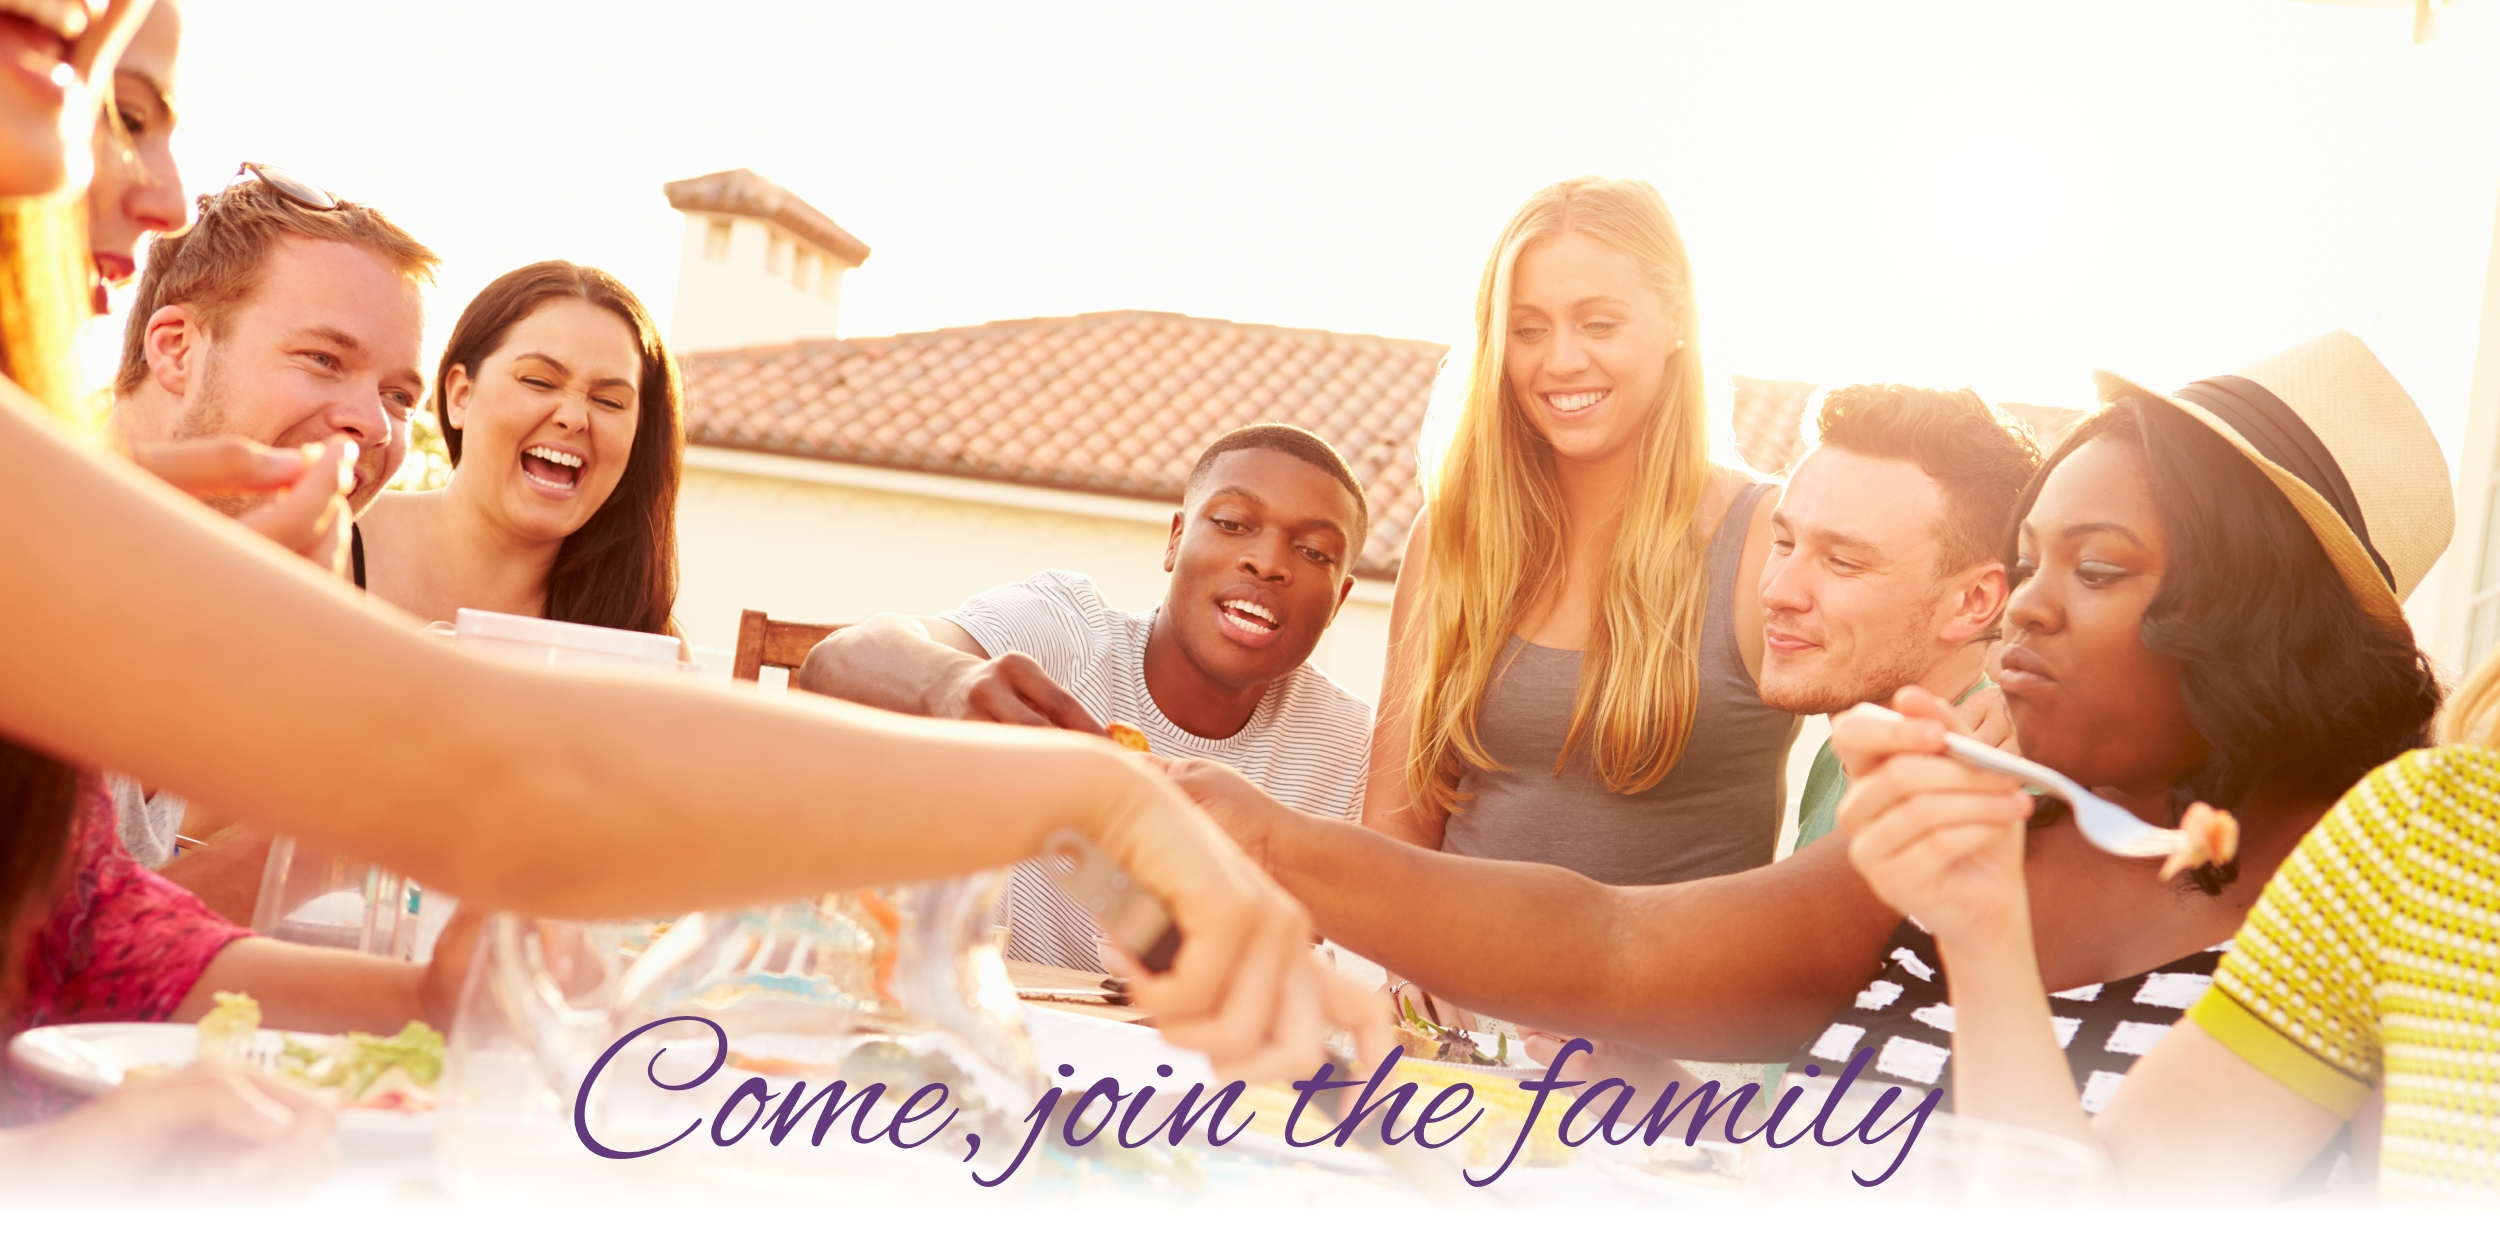 Come, join the Family